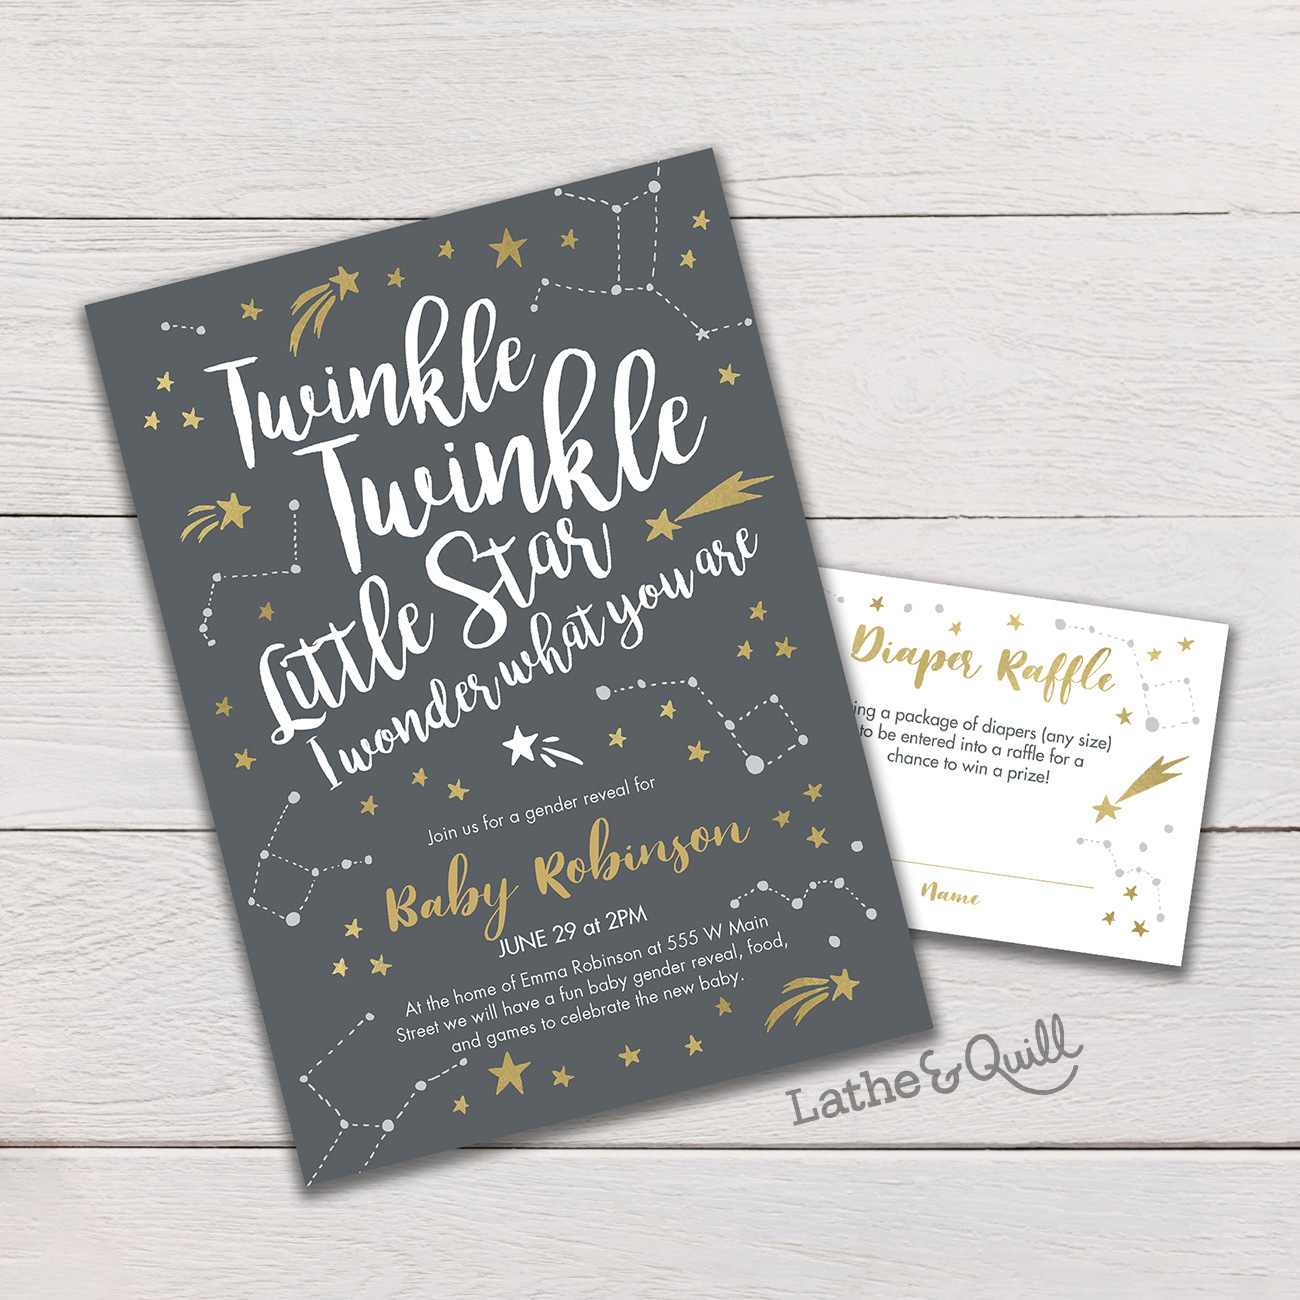 Twinkle Twinkle Little Star Gender Reveal is a cute way to start the baby celebrating process and keeping friends and family connected with this new milestone in your life.